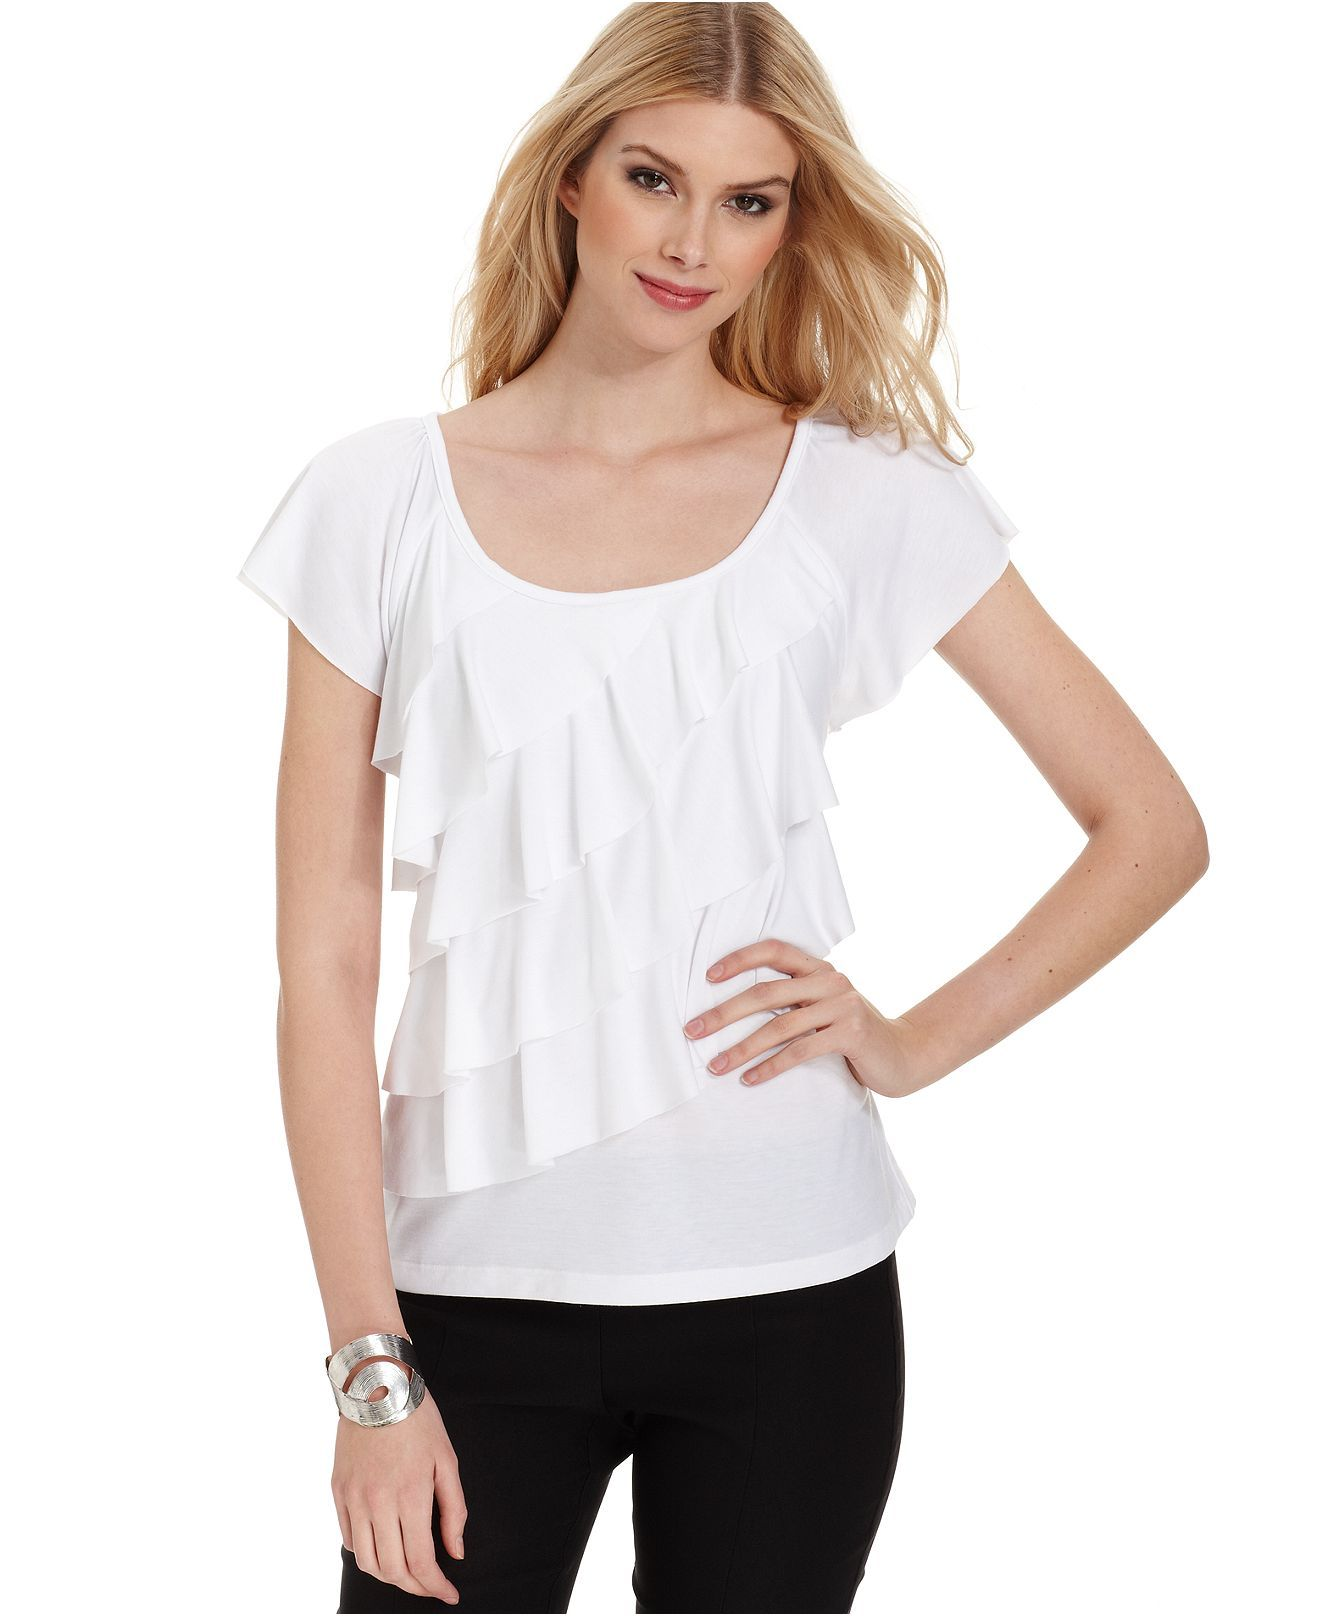 Agb Top Short Sleeve Ruffled Tiered Womens Tops Macy